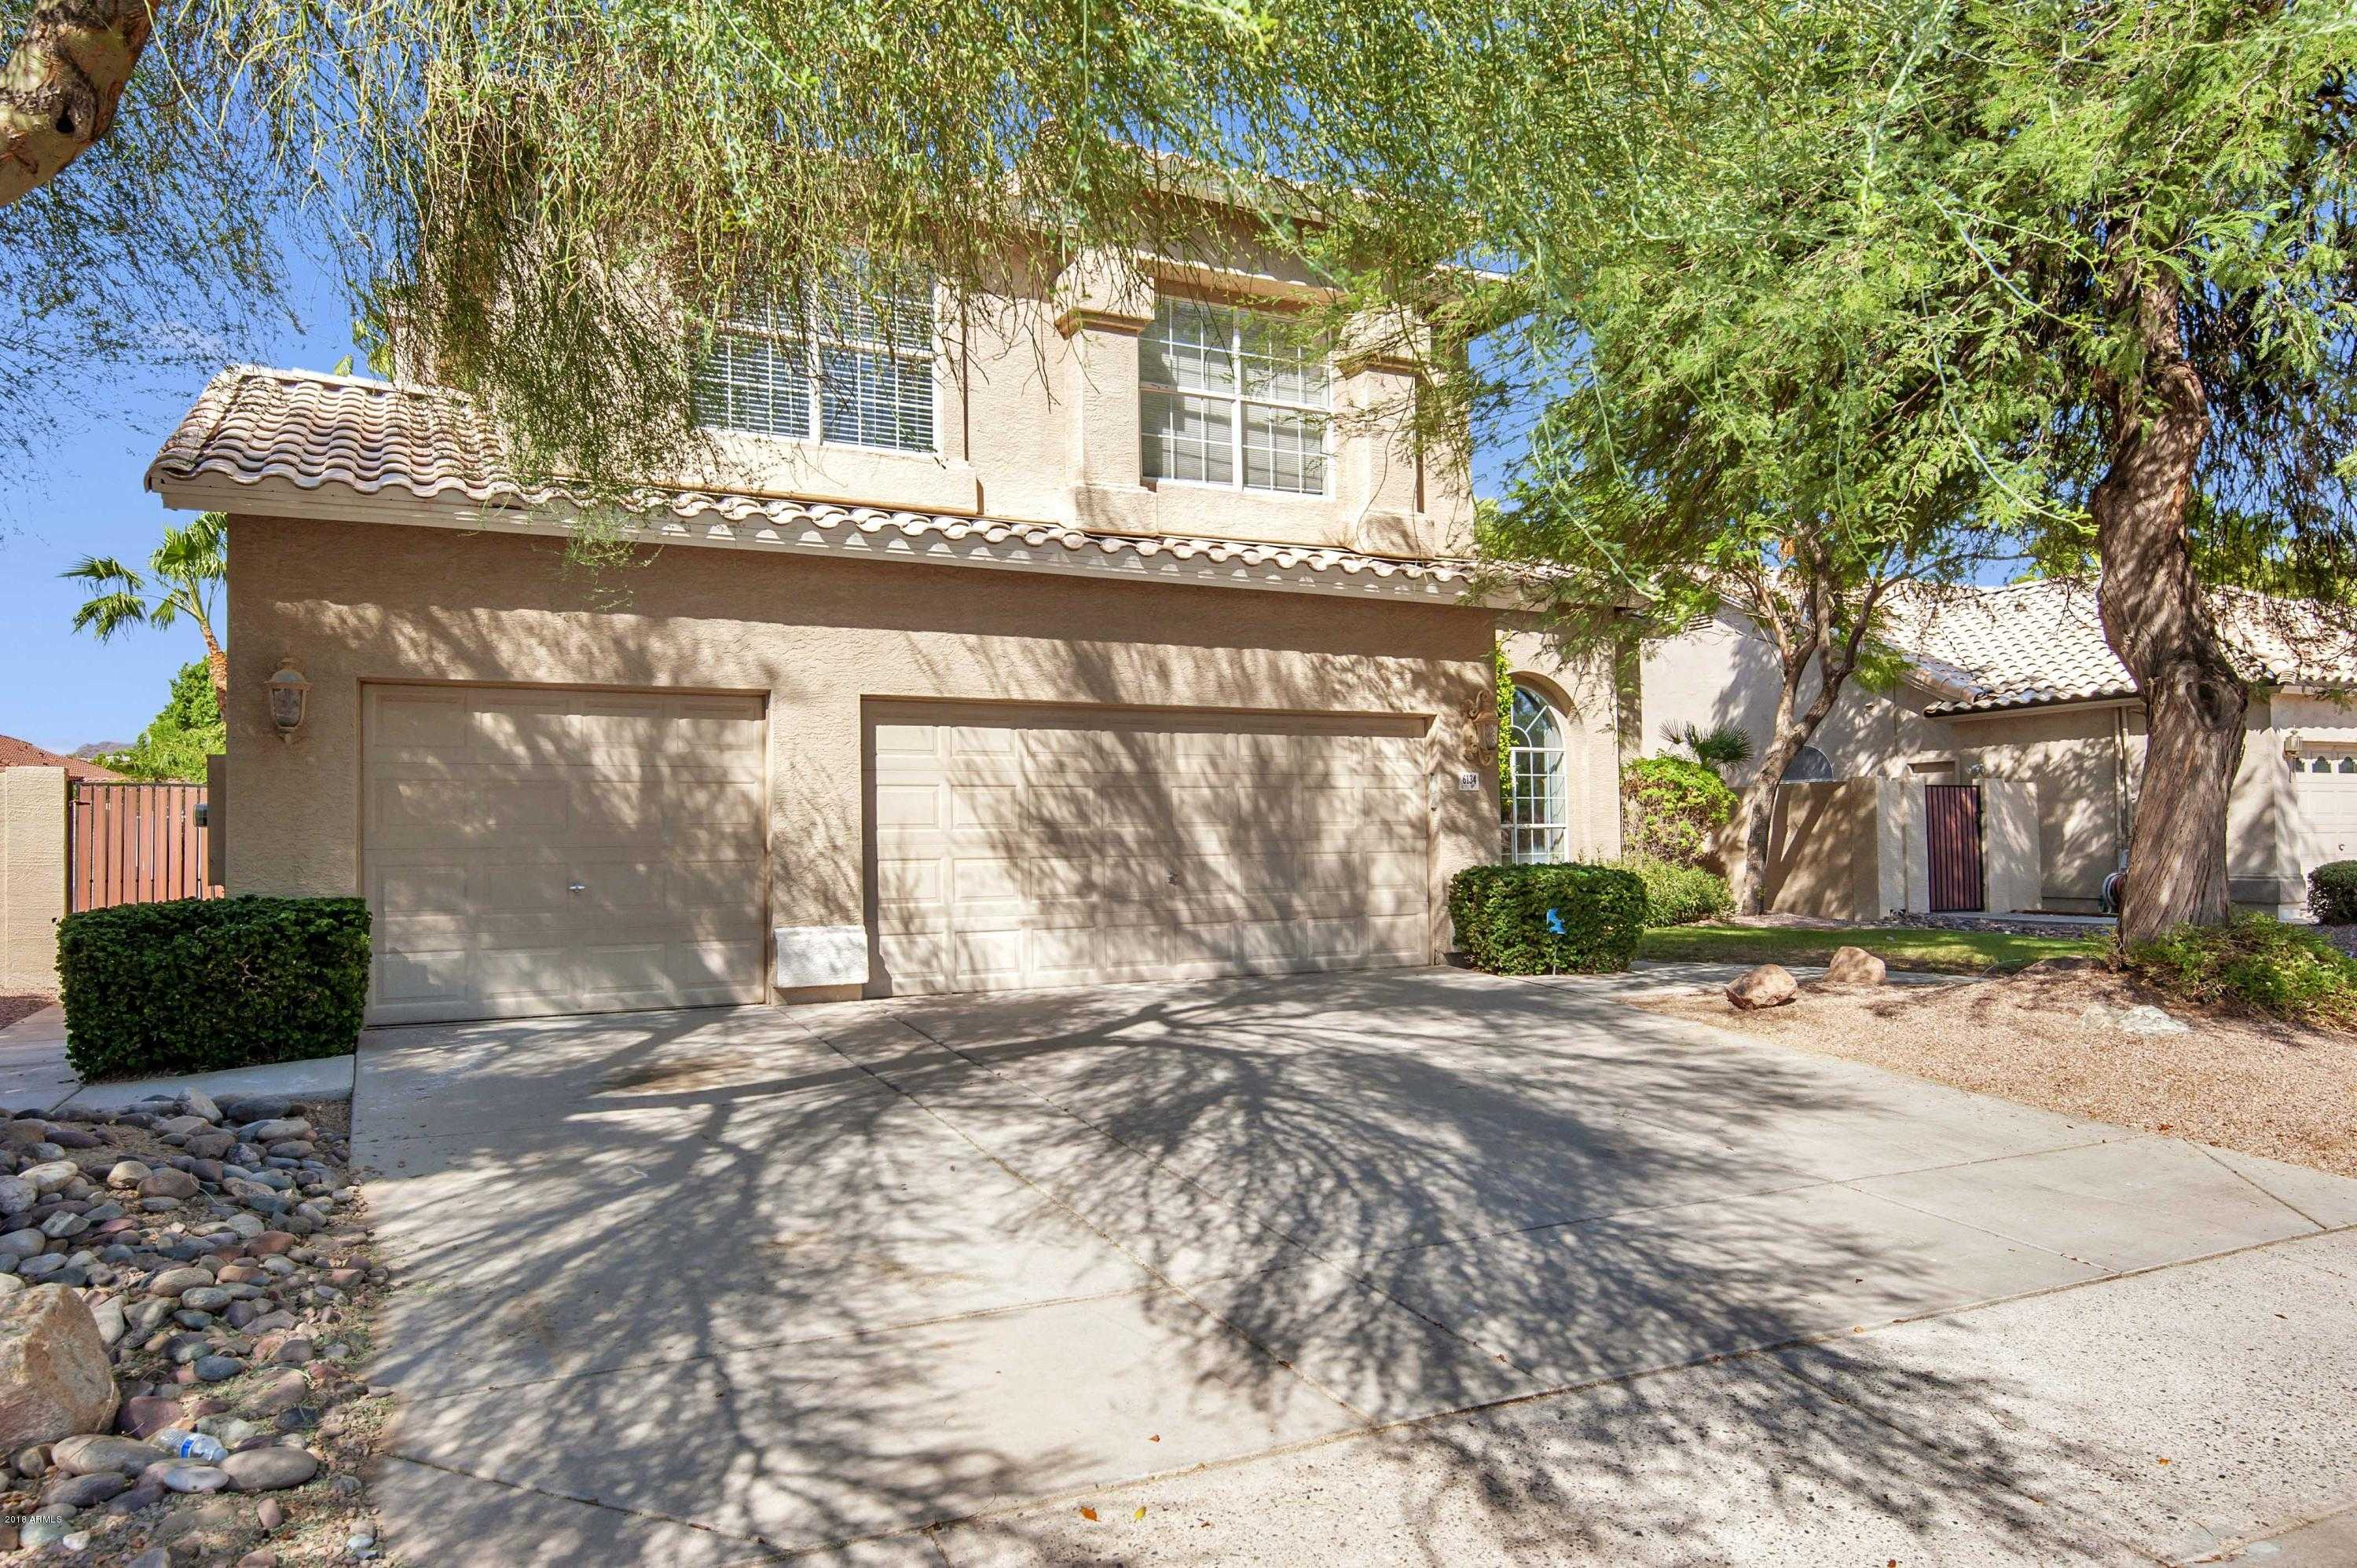 $475,000 - 4Br/3Ba - Home for Sale in Arrowhead Ranch Parcel 5, Glendale